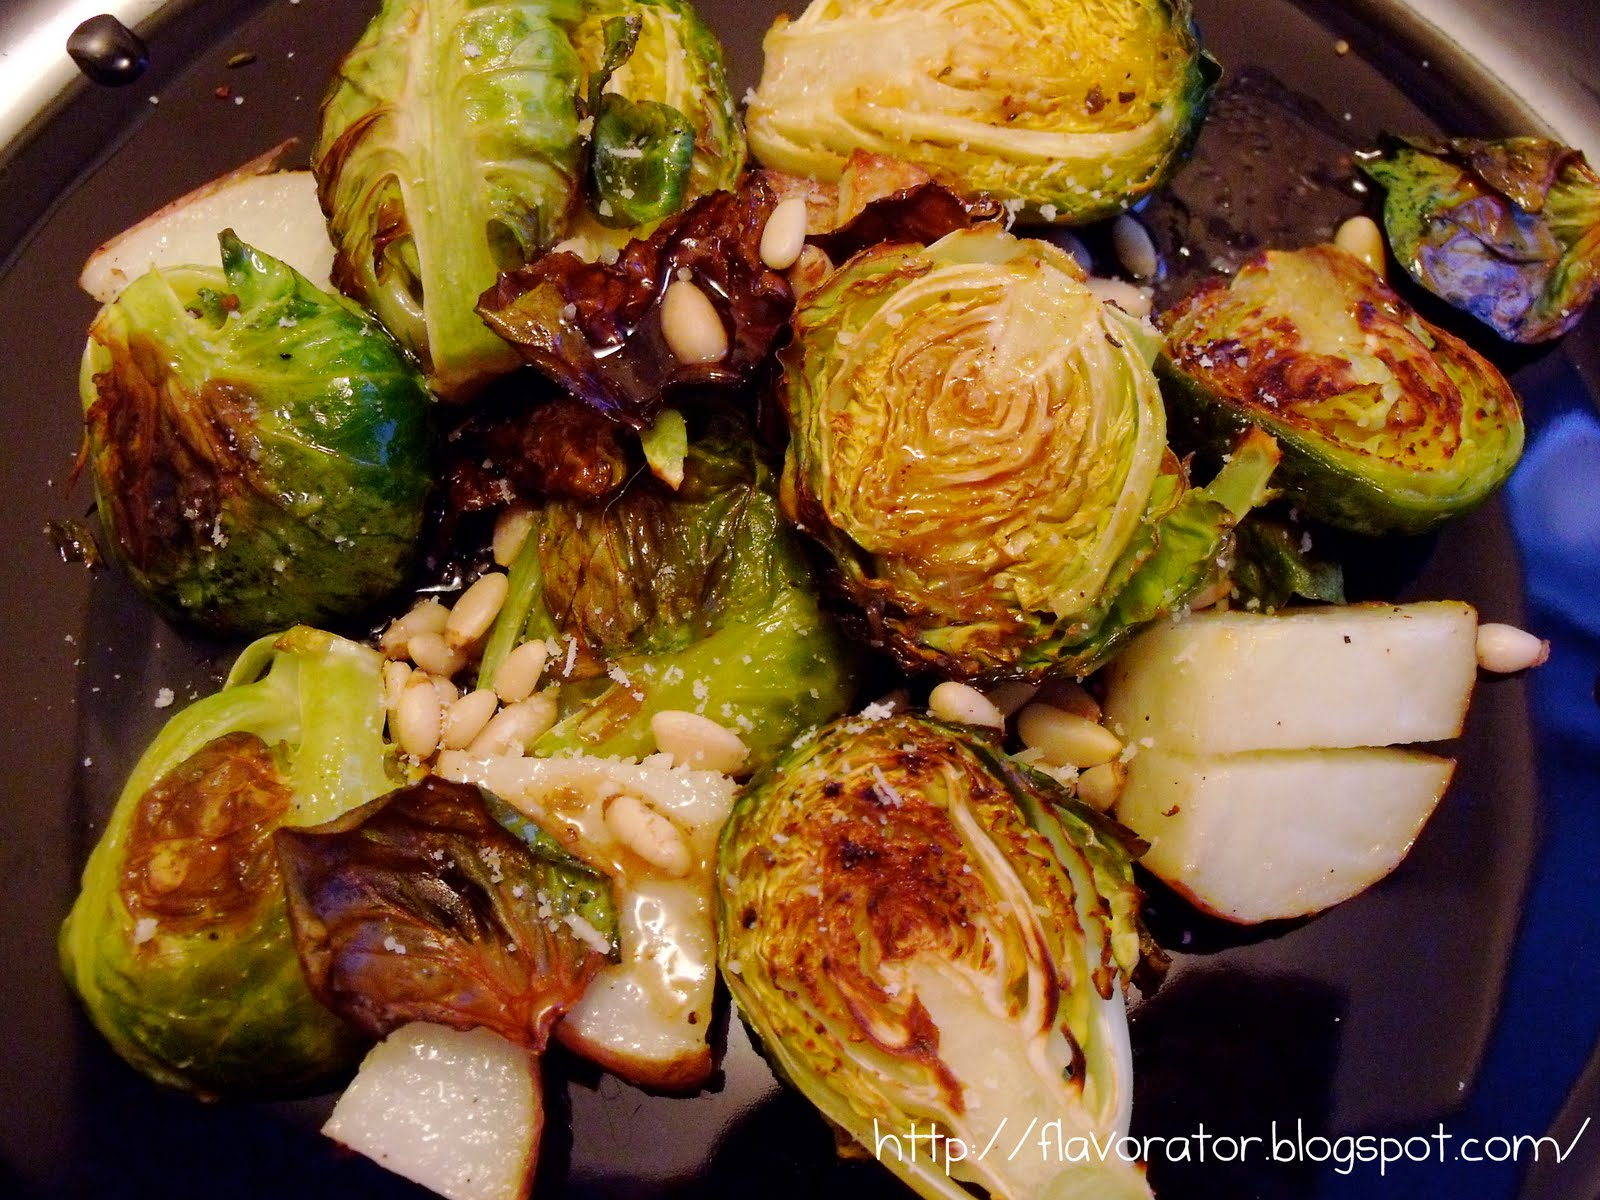 fLAVORATOr: Balsamic Roasted Brussels Sprouts with Toasted Pine Nuts